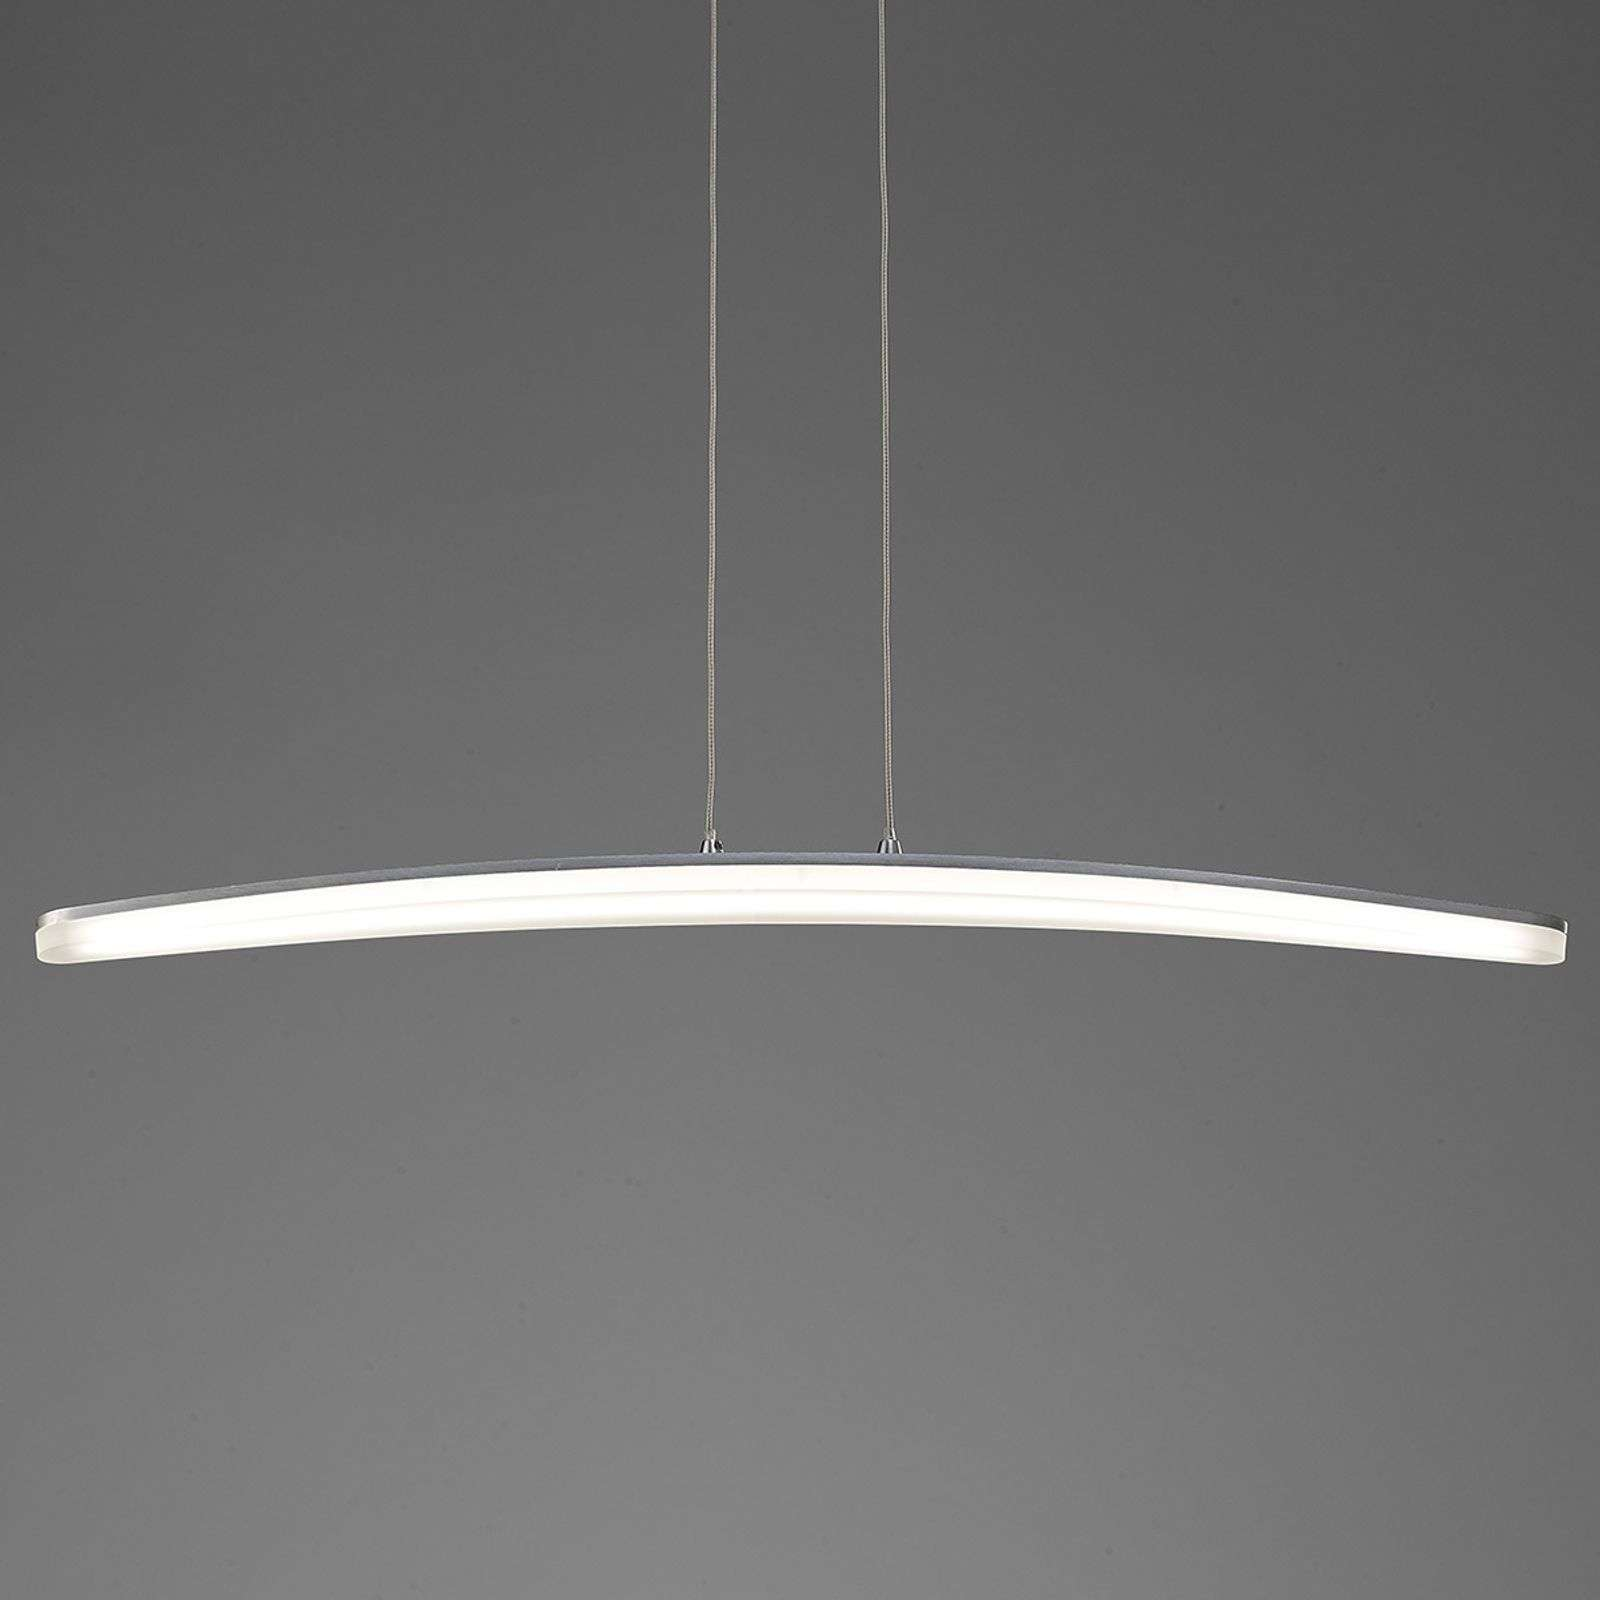 Suspension LED moderne Hemisferic 70,4 cm